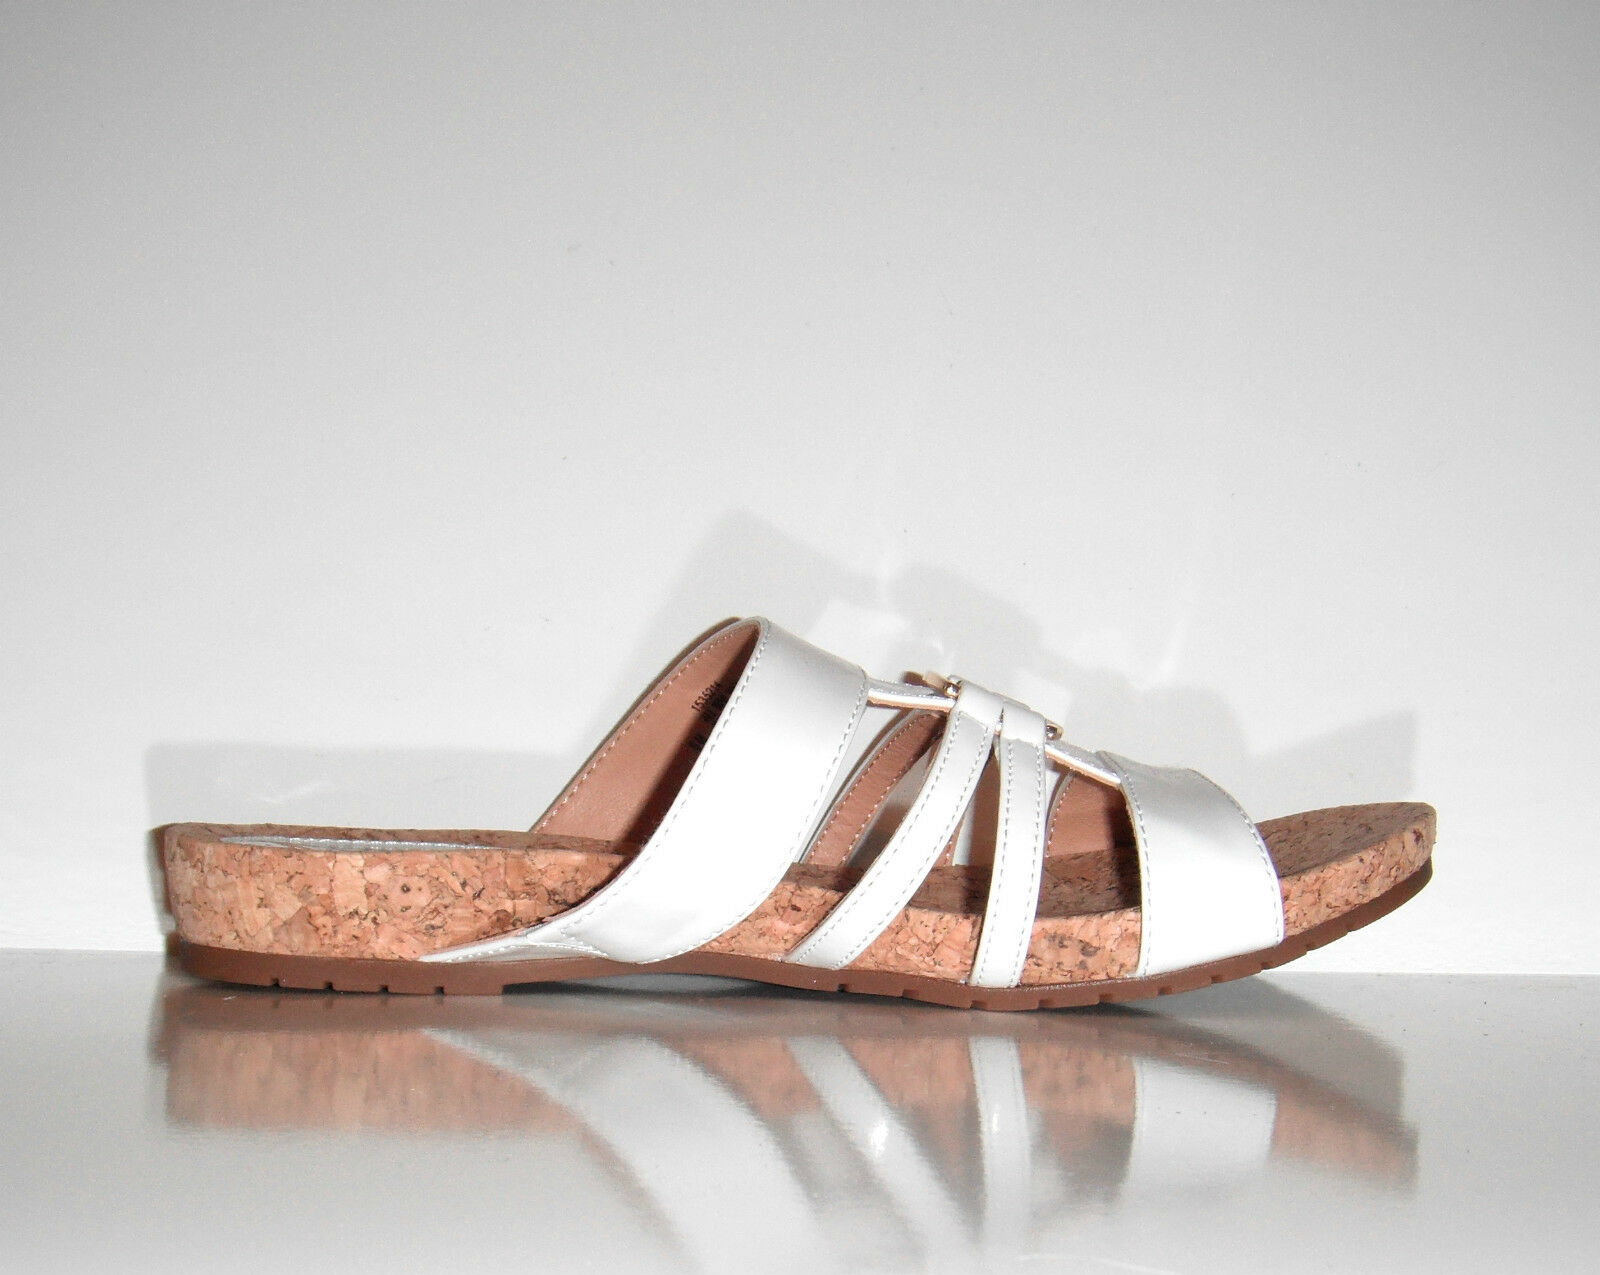 New Sofft Women  Comfortable Slide White Patent Leather Cork Sandals shoes sz 6